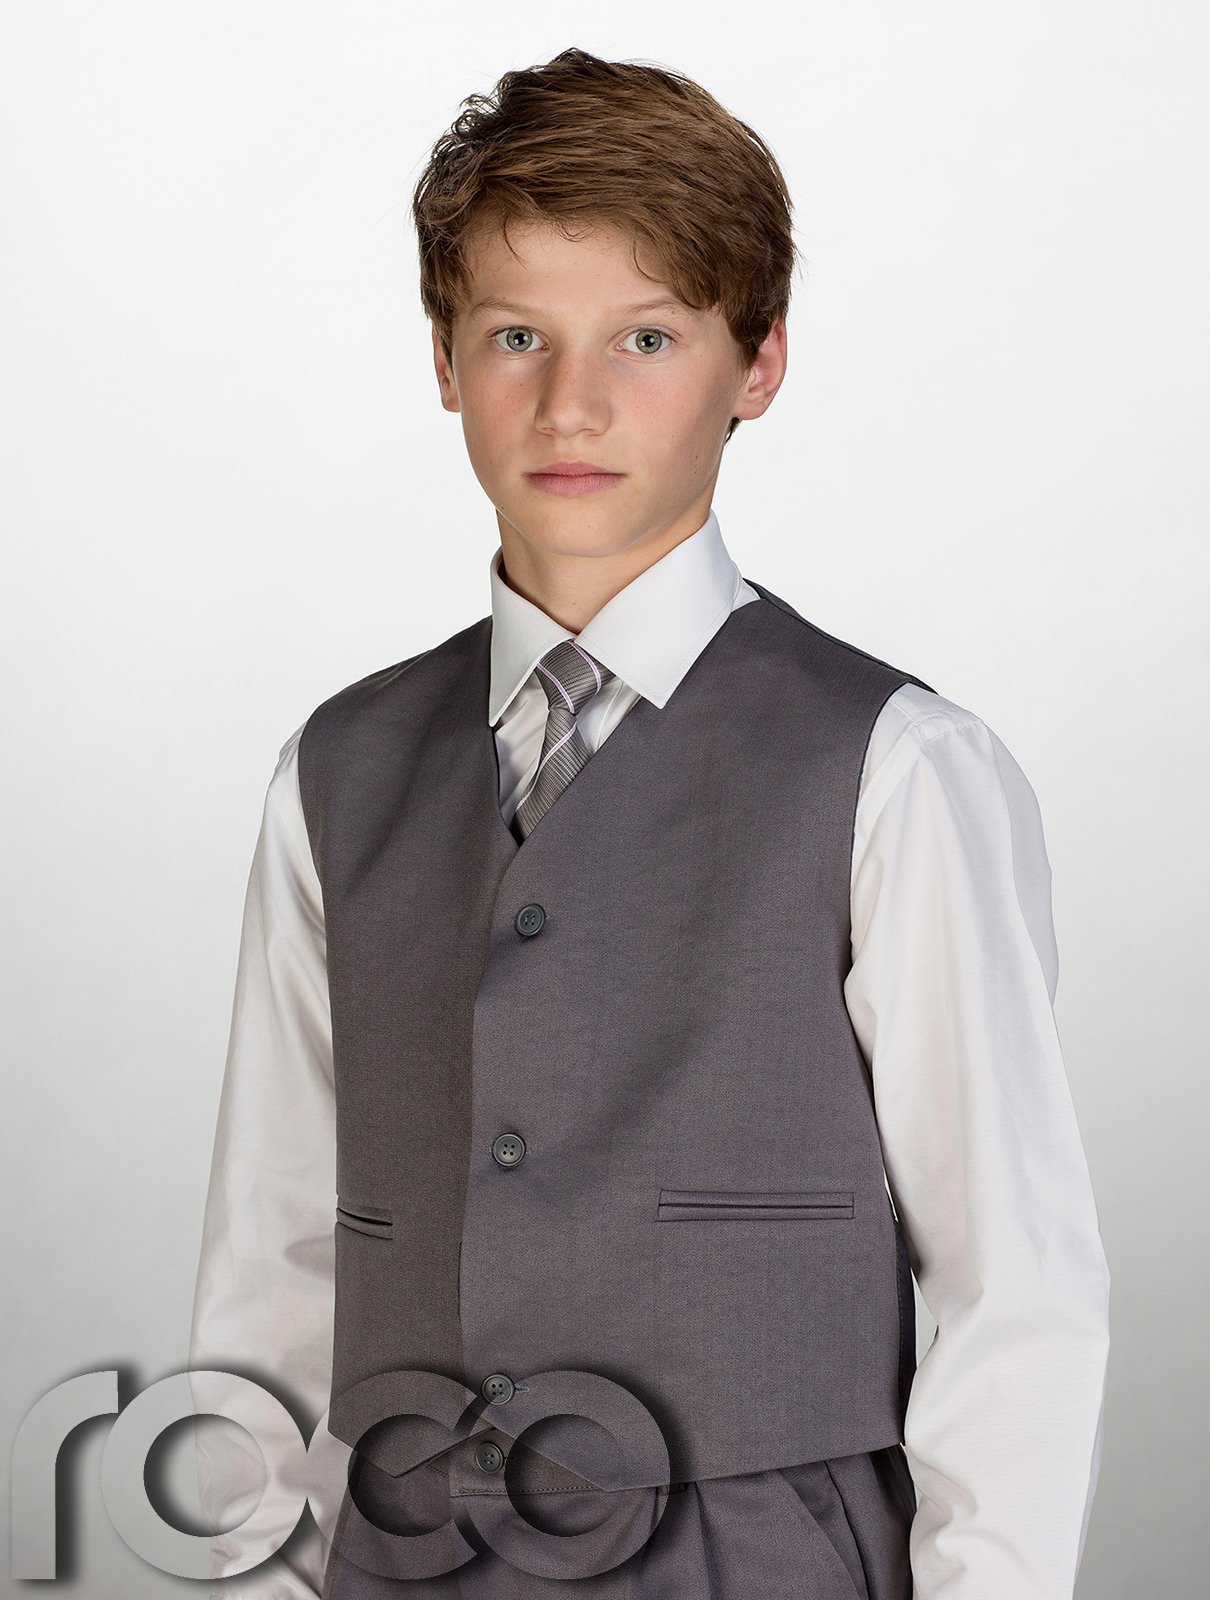 Boys' Dress Suits Little boys need formal suits in their wardrobes to be ready for those important family occasions. Our classically tailored five-piece suits are perfect for family, church, or school events.